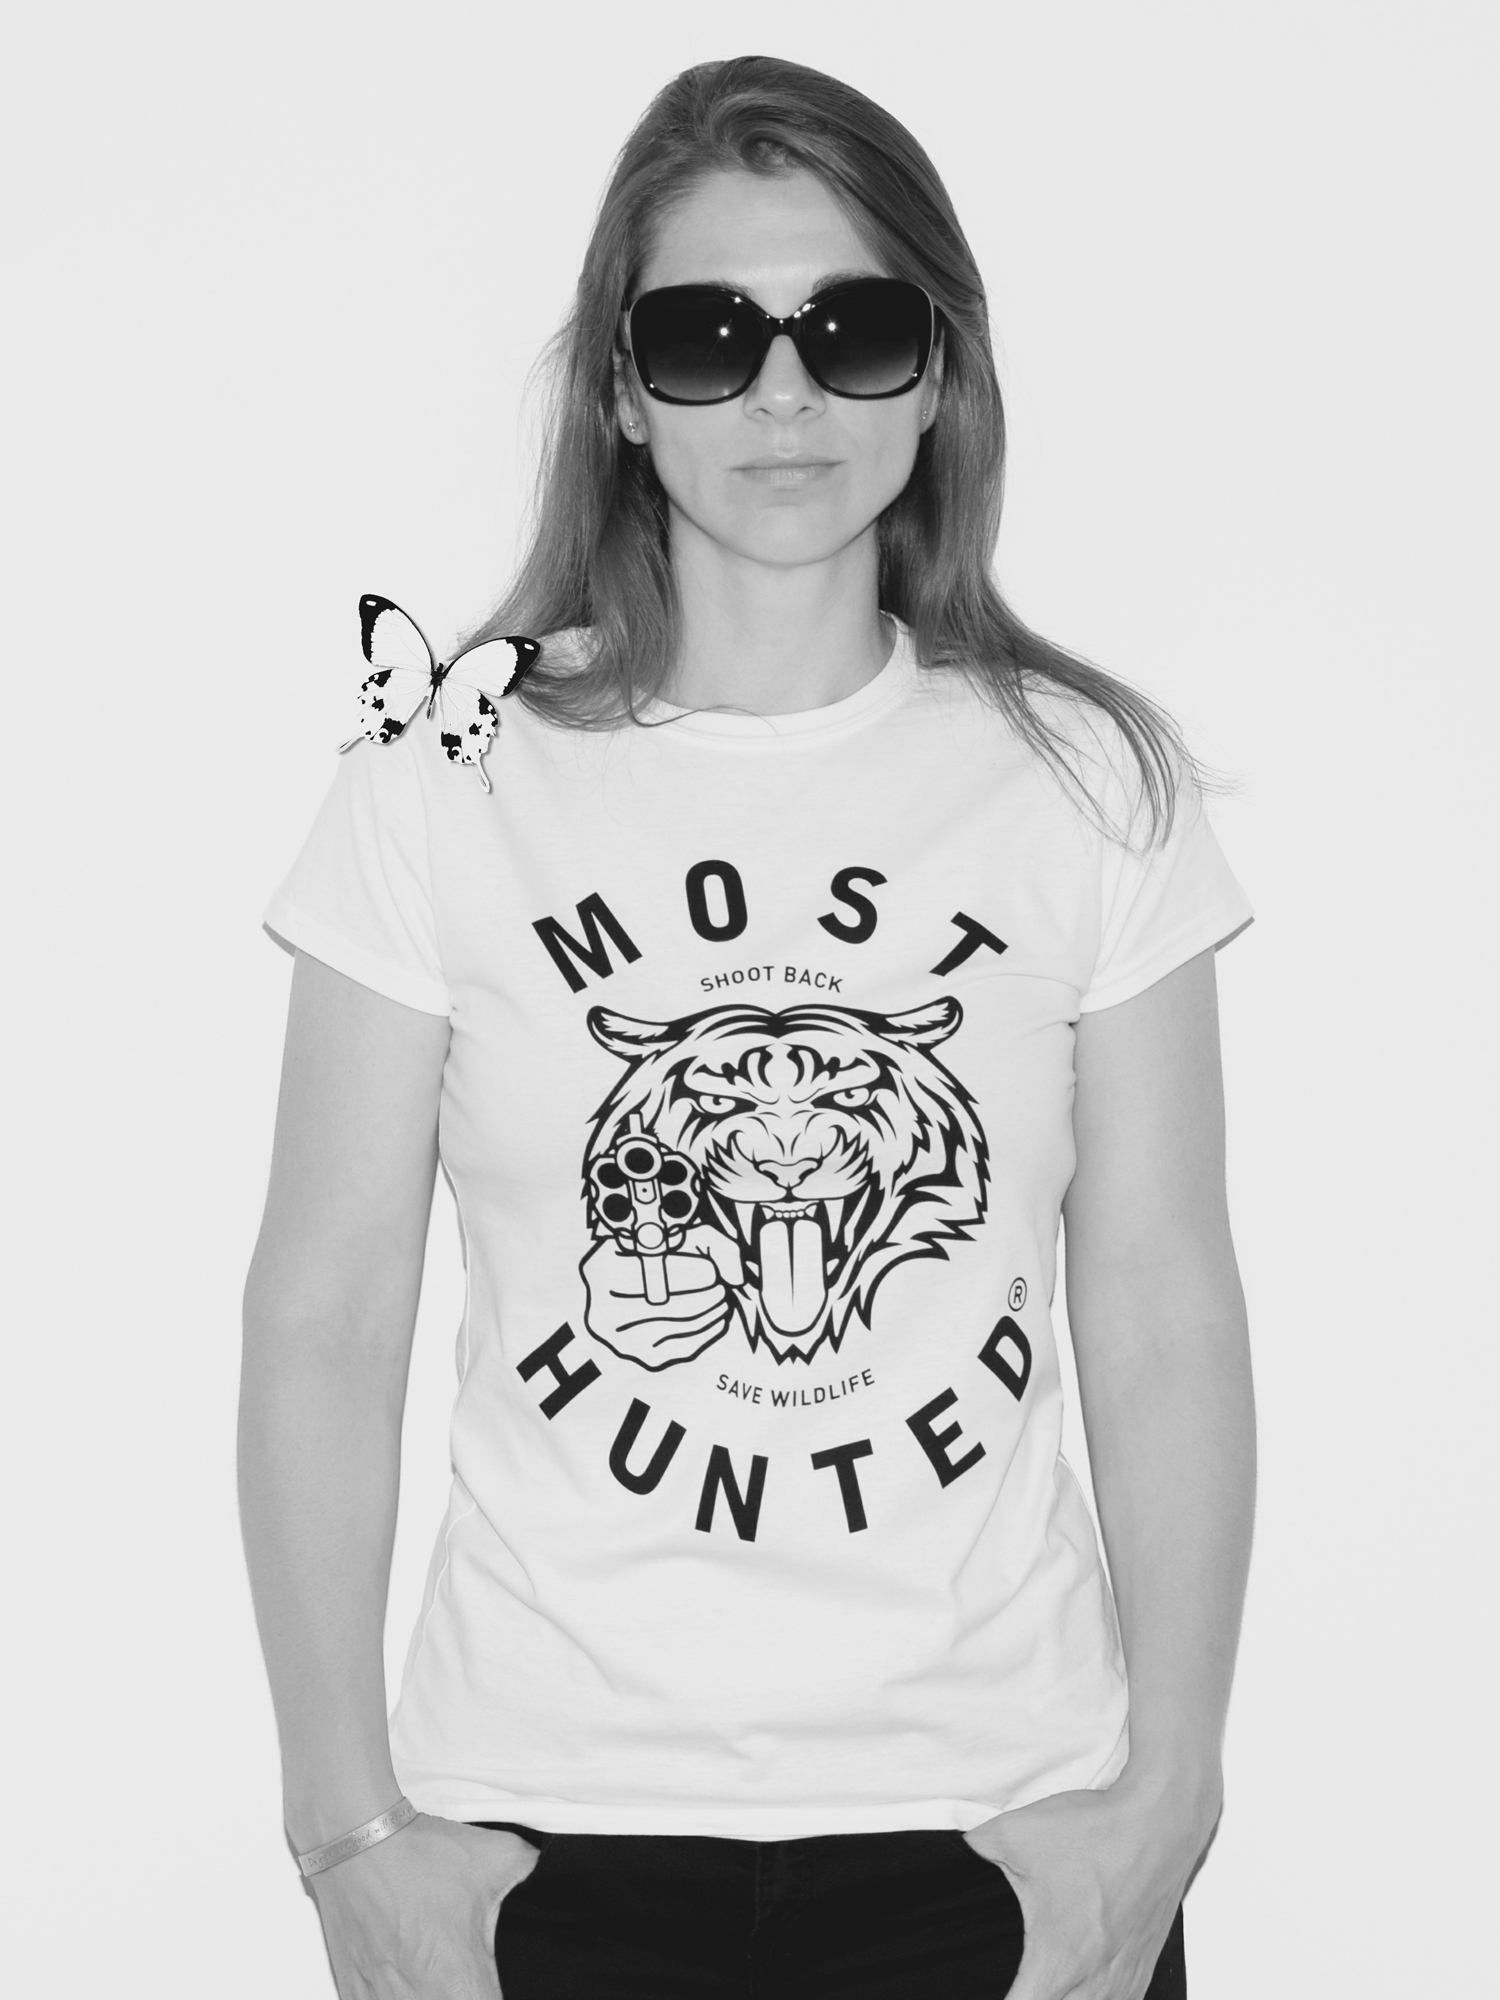 White t shirt for womens - White Tiger T Shirt Women Most_hunted_white_tiger_tee_women_shop